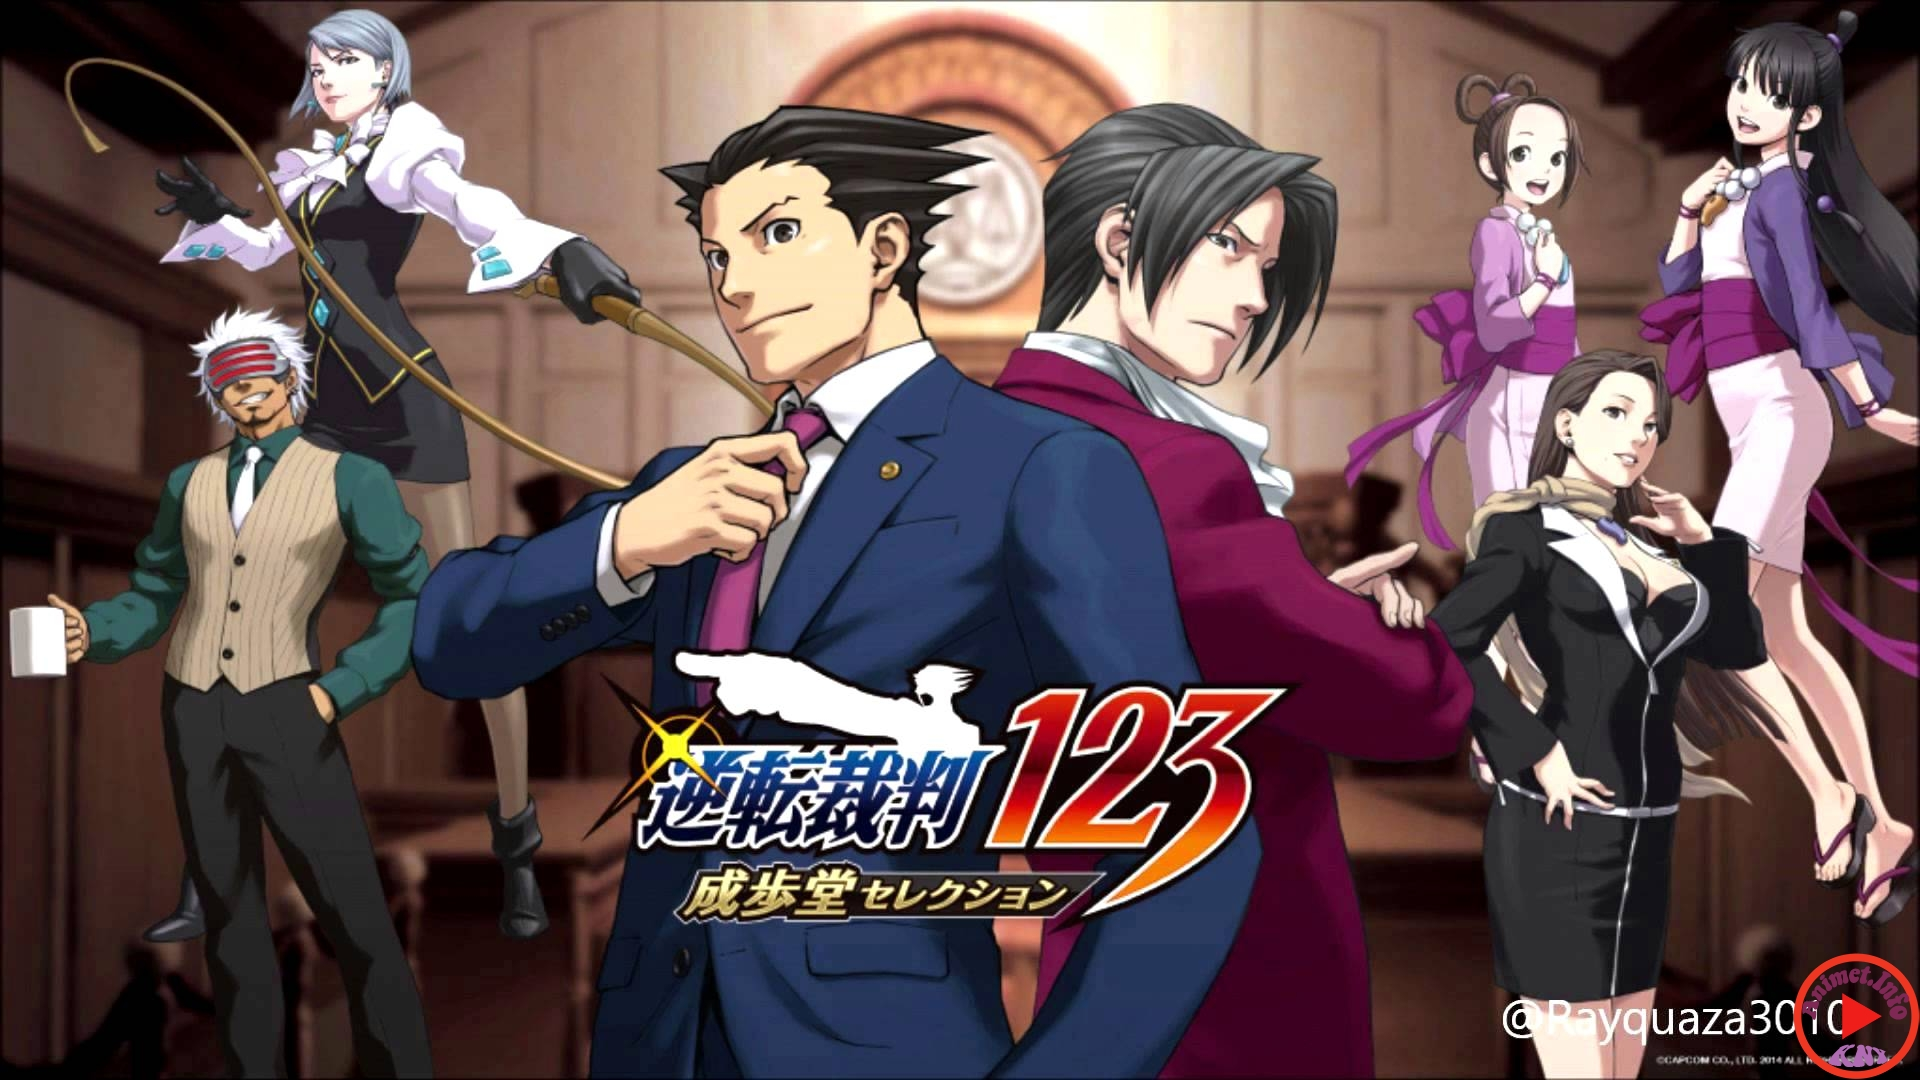 Gyakuten Saiban: Sono Shinjitsu, Igi Ari! - Ace Attorney | Phoenix Wright: Ace Attorney